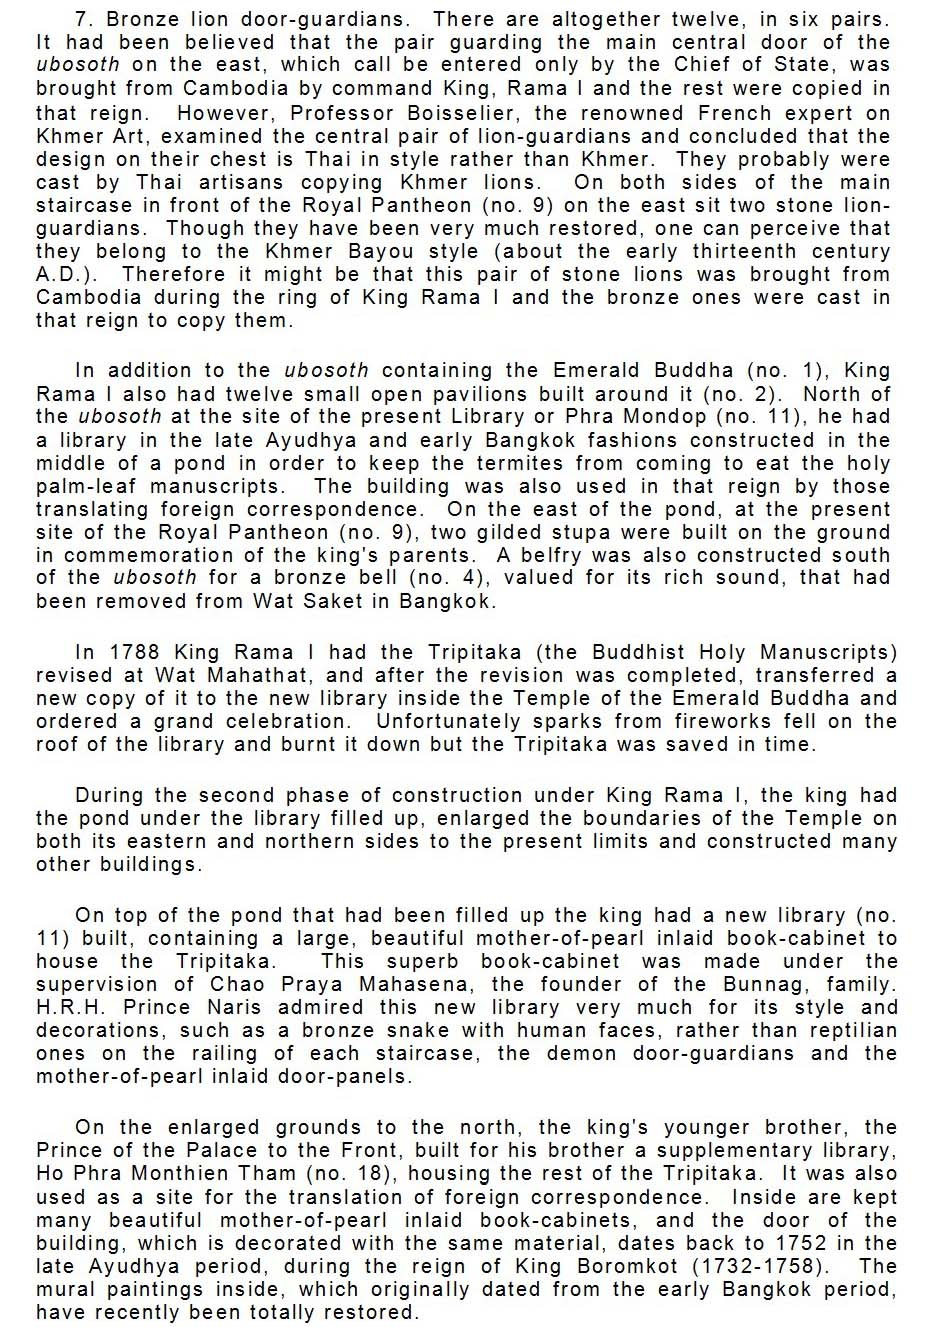 History of the Emerald Buddha page 5